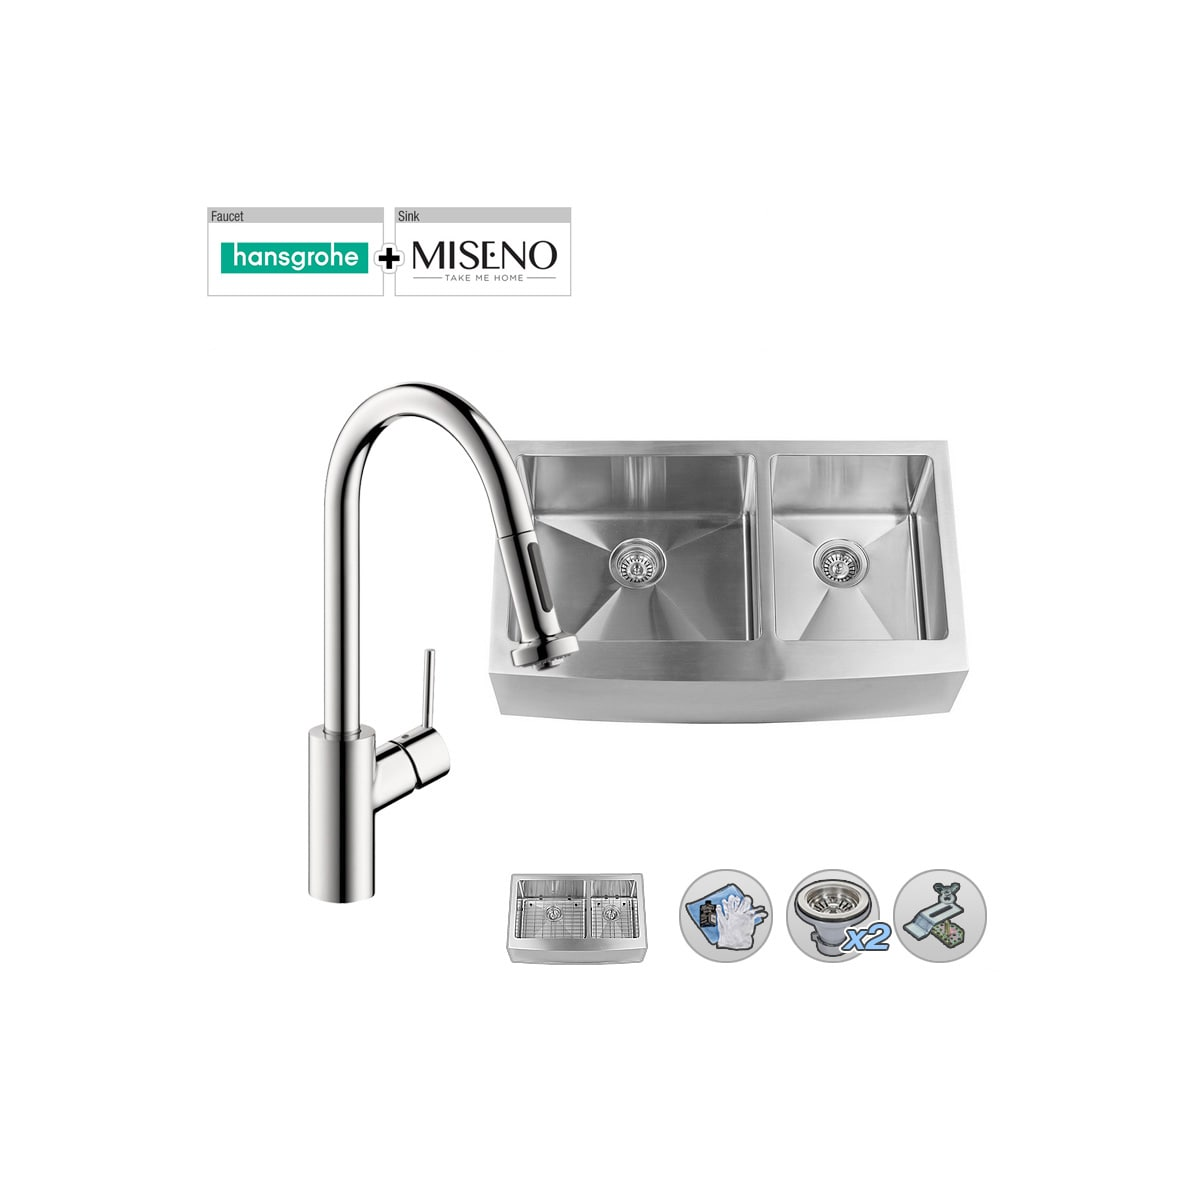 Build Smart Kits Mno163620f6040 H14877 Ch Chrome Faucet Miseno 36 Double Bowl 16 Gauge Stainless Steel Kitchen Sink With Hansgrohe Talis S Pullout Spray Faucet Faucet Com